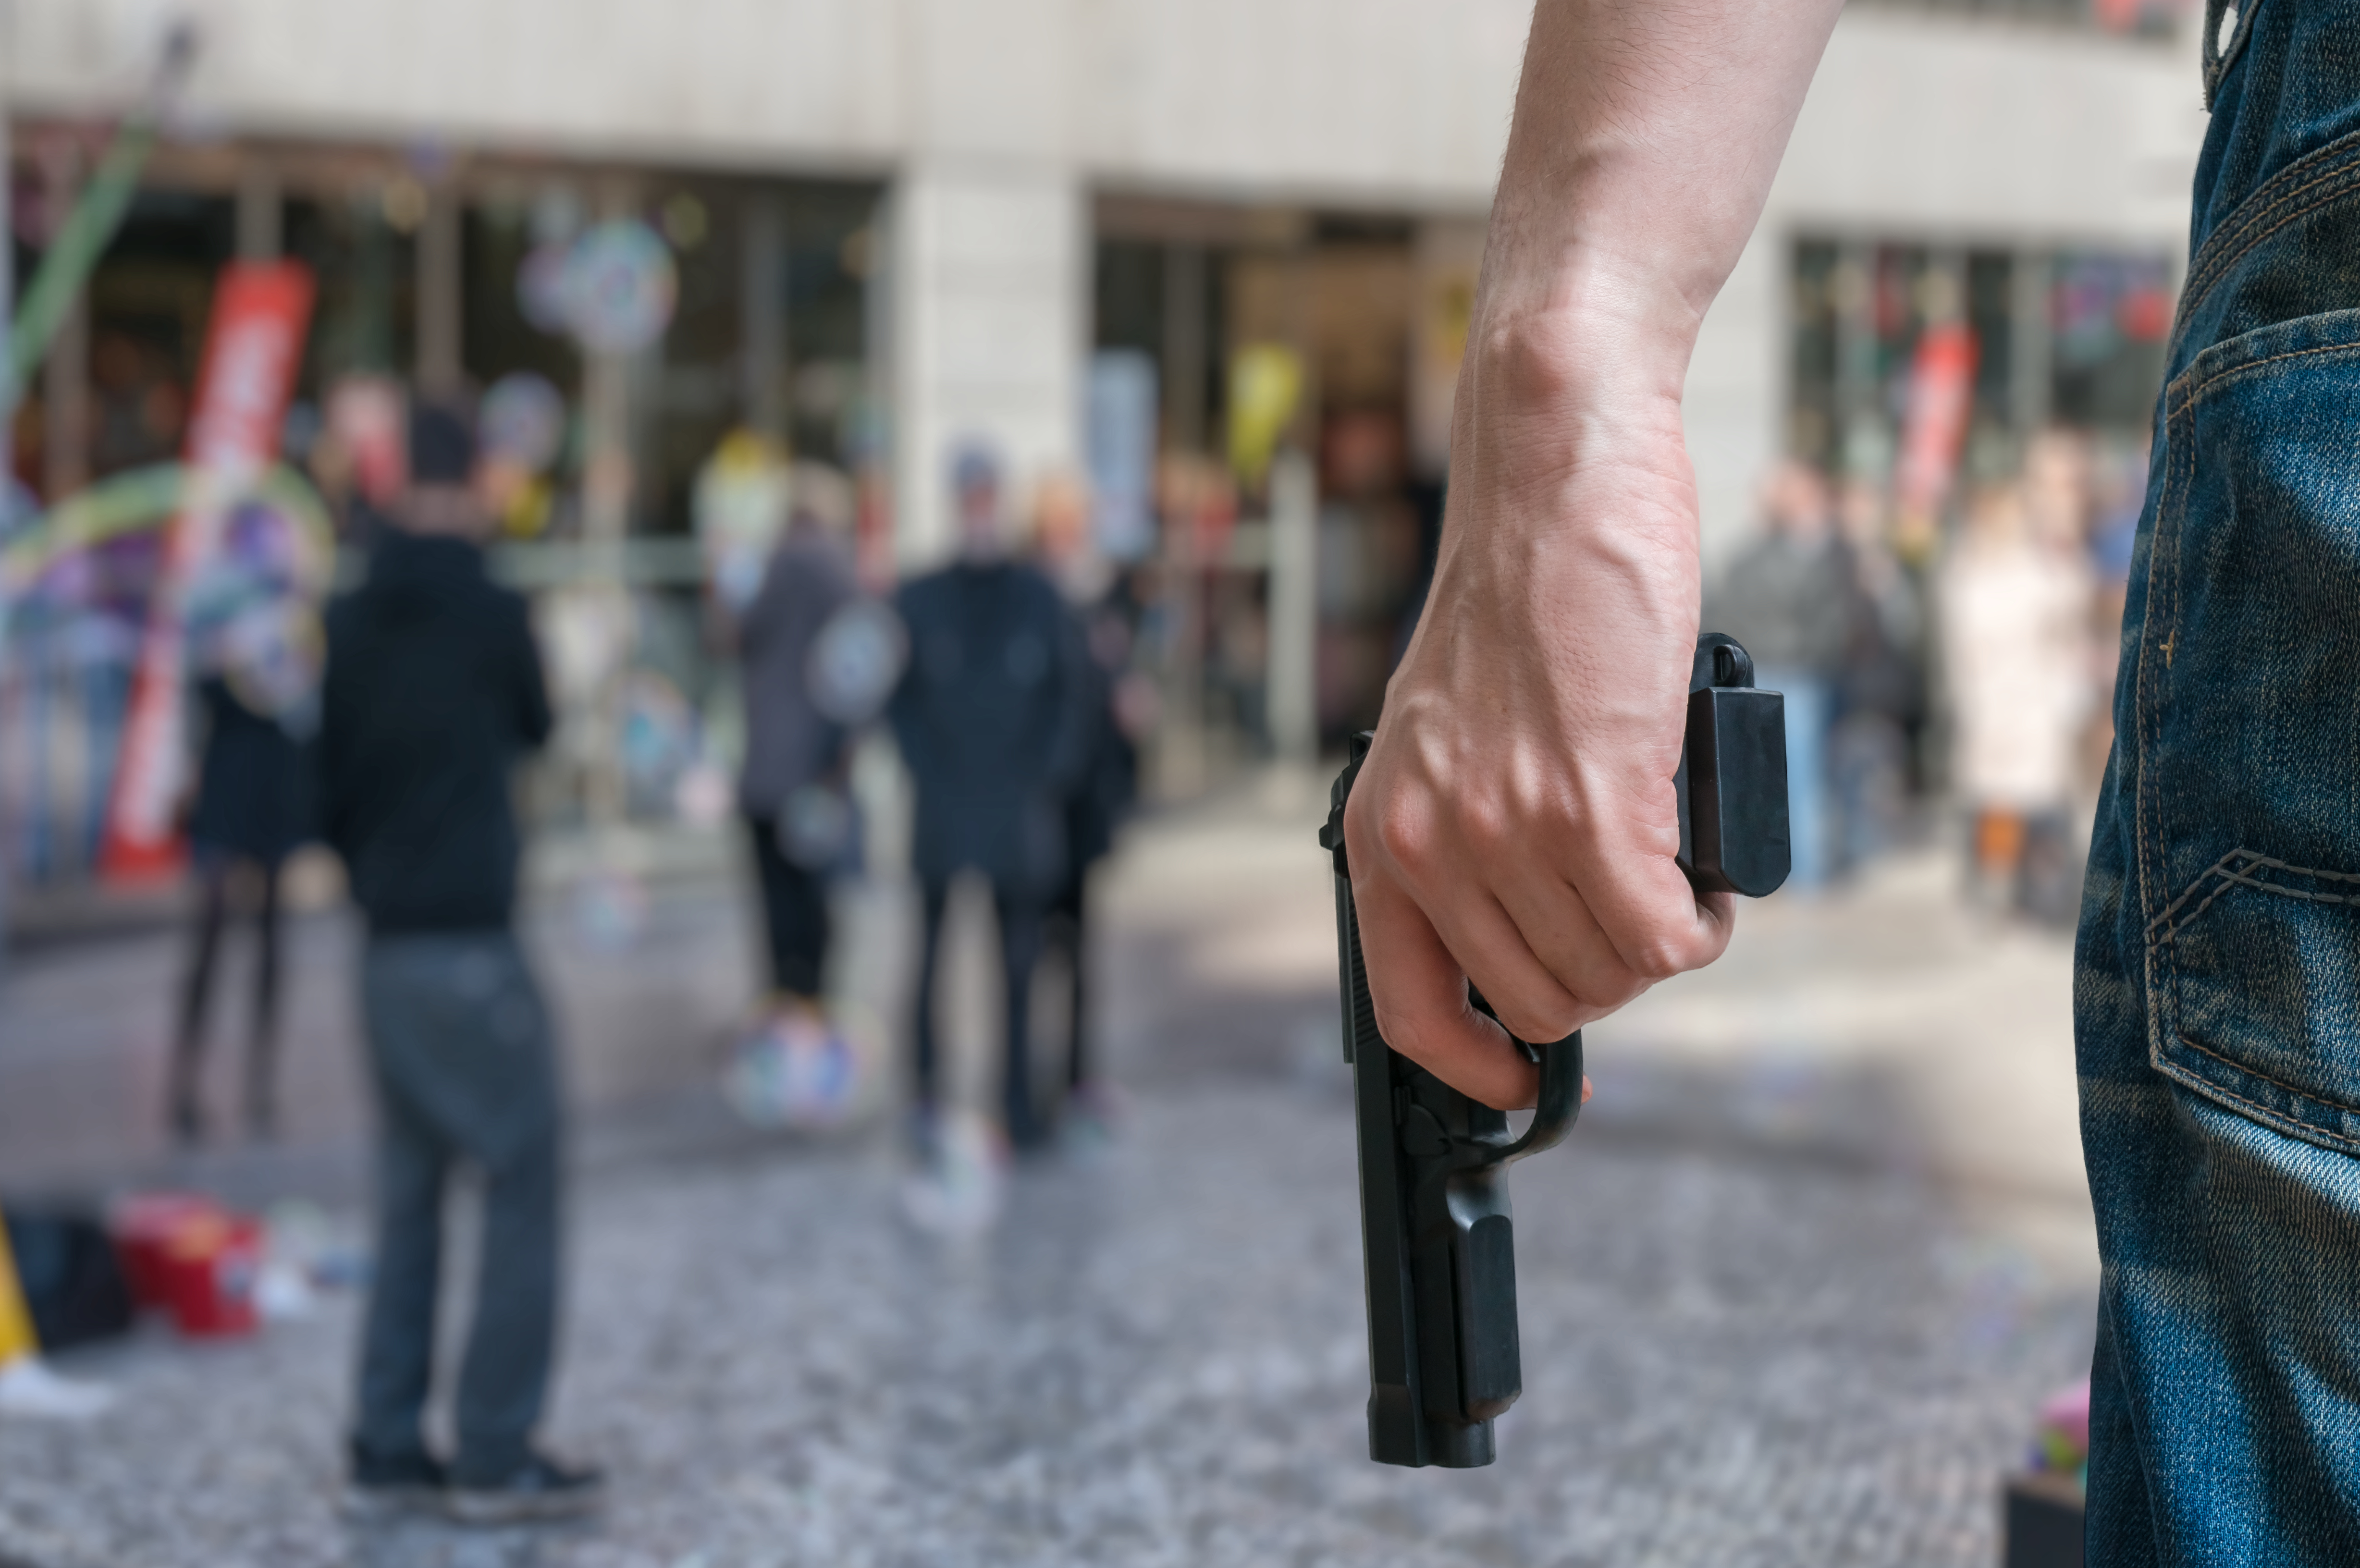 People with guns sometimes use them to shoot others arbitrarily.